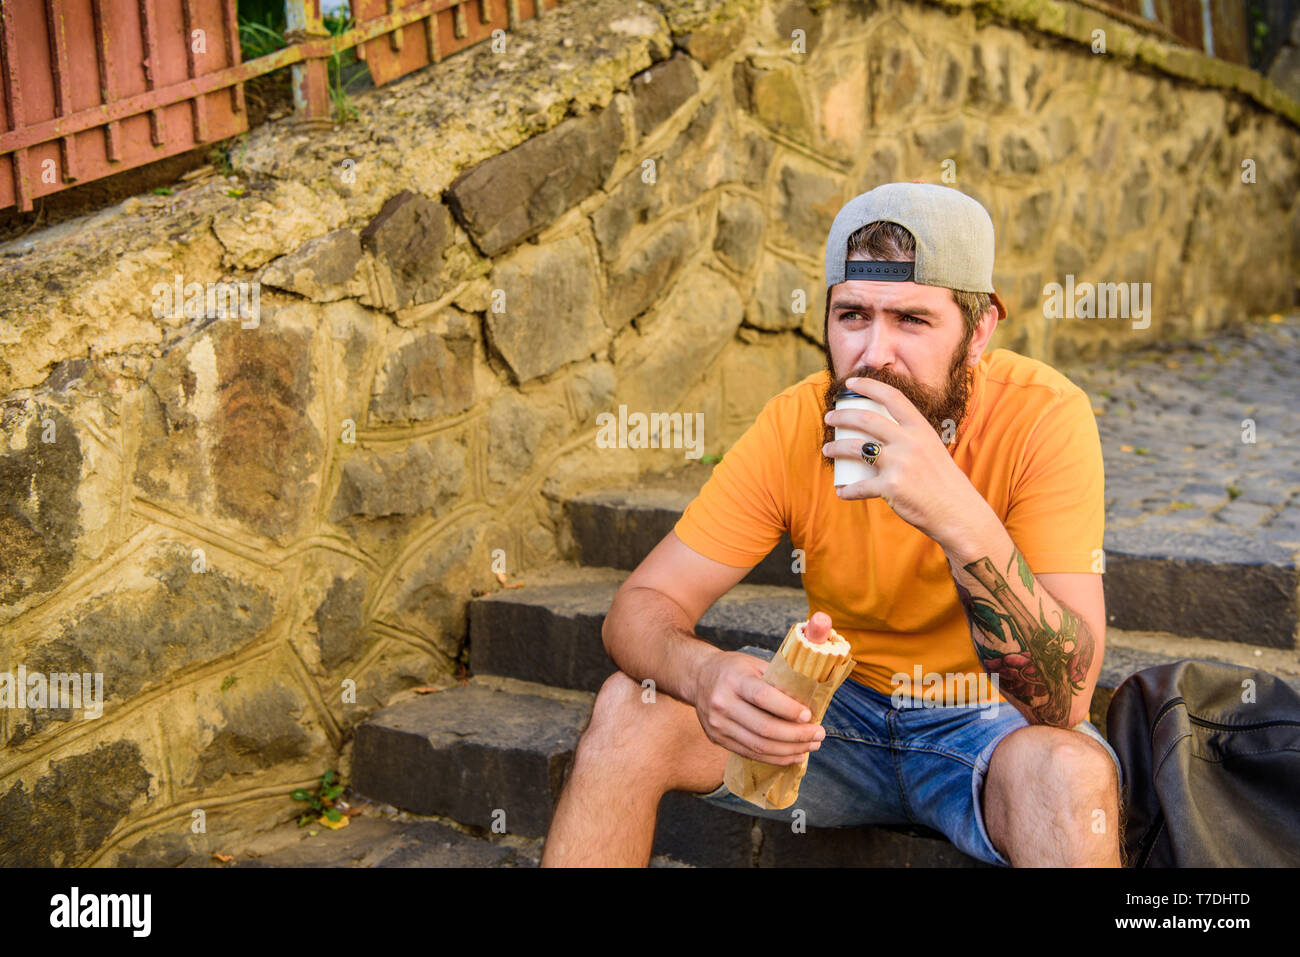 Man bearded enjoy quick snack. Street food so good. Urban lifestyle and unhealthy nutrition. Carefree hipster eat junk food while sit on stairs. Hungry man snack. Junk food. Guy eating hot dog. - Stock Image